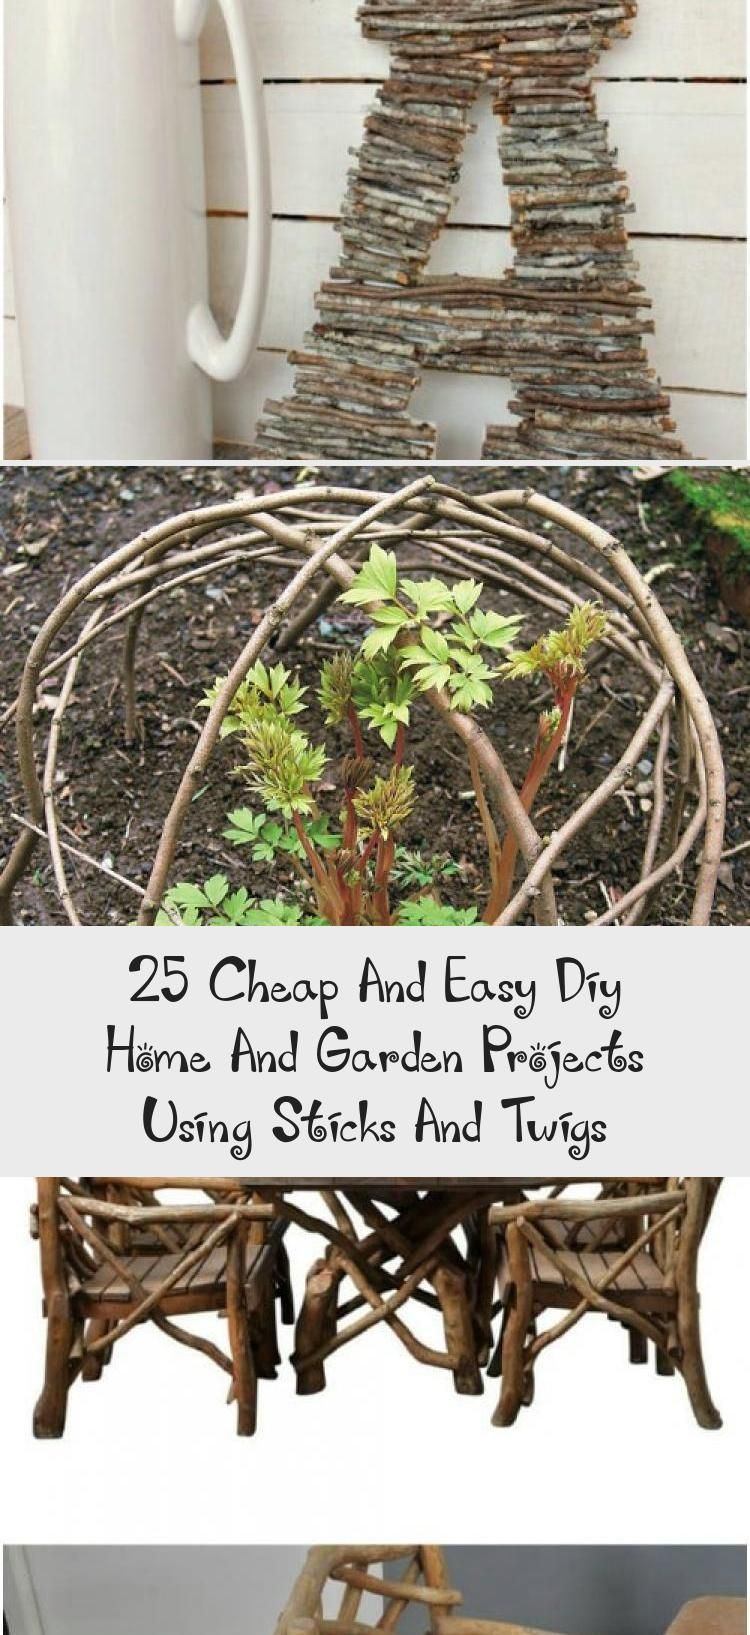 25 Cheap And Easy Diy Home And Garden Projects Using Sticks And Twigs Diy Dc Cheap Diy Easy Garden Home In 2020 Garden Projects Diy Garden Trellis Twigs Diy